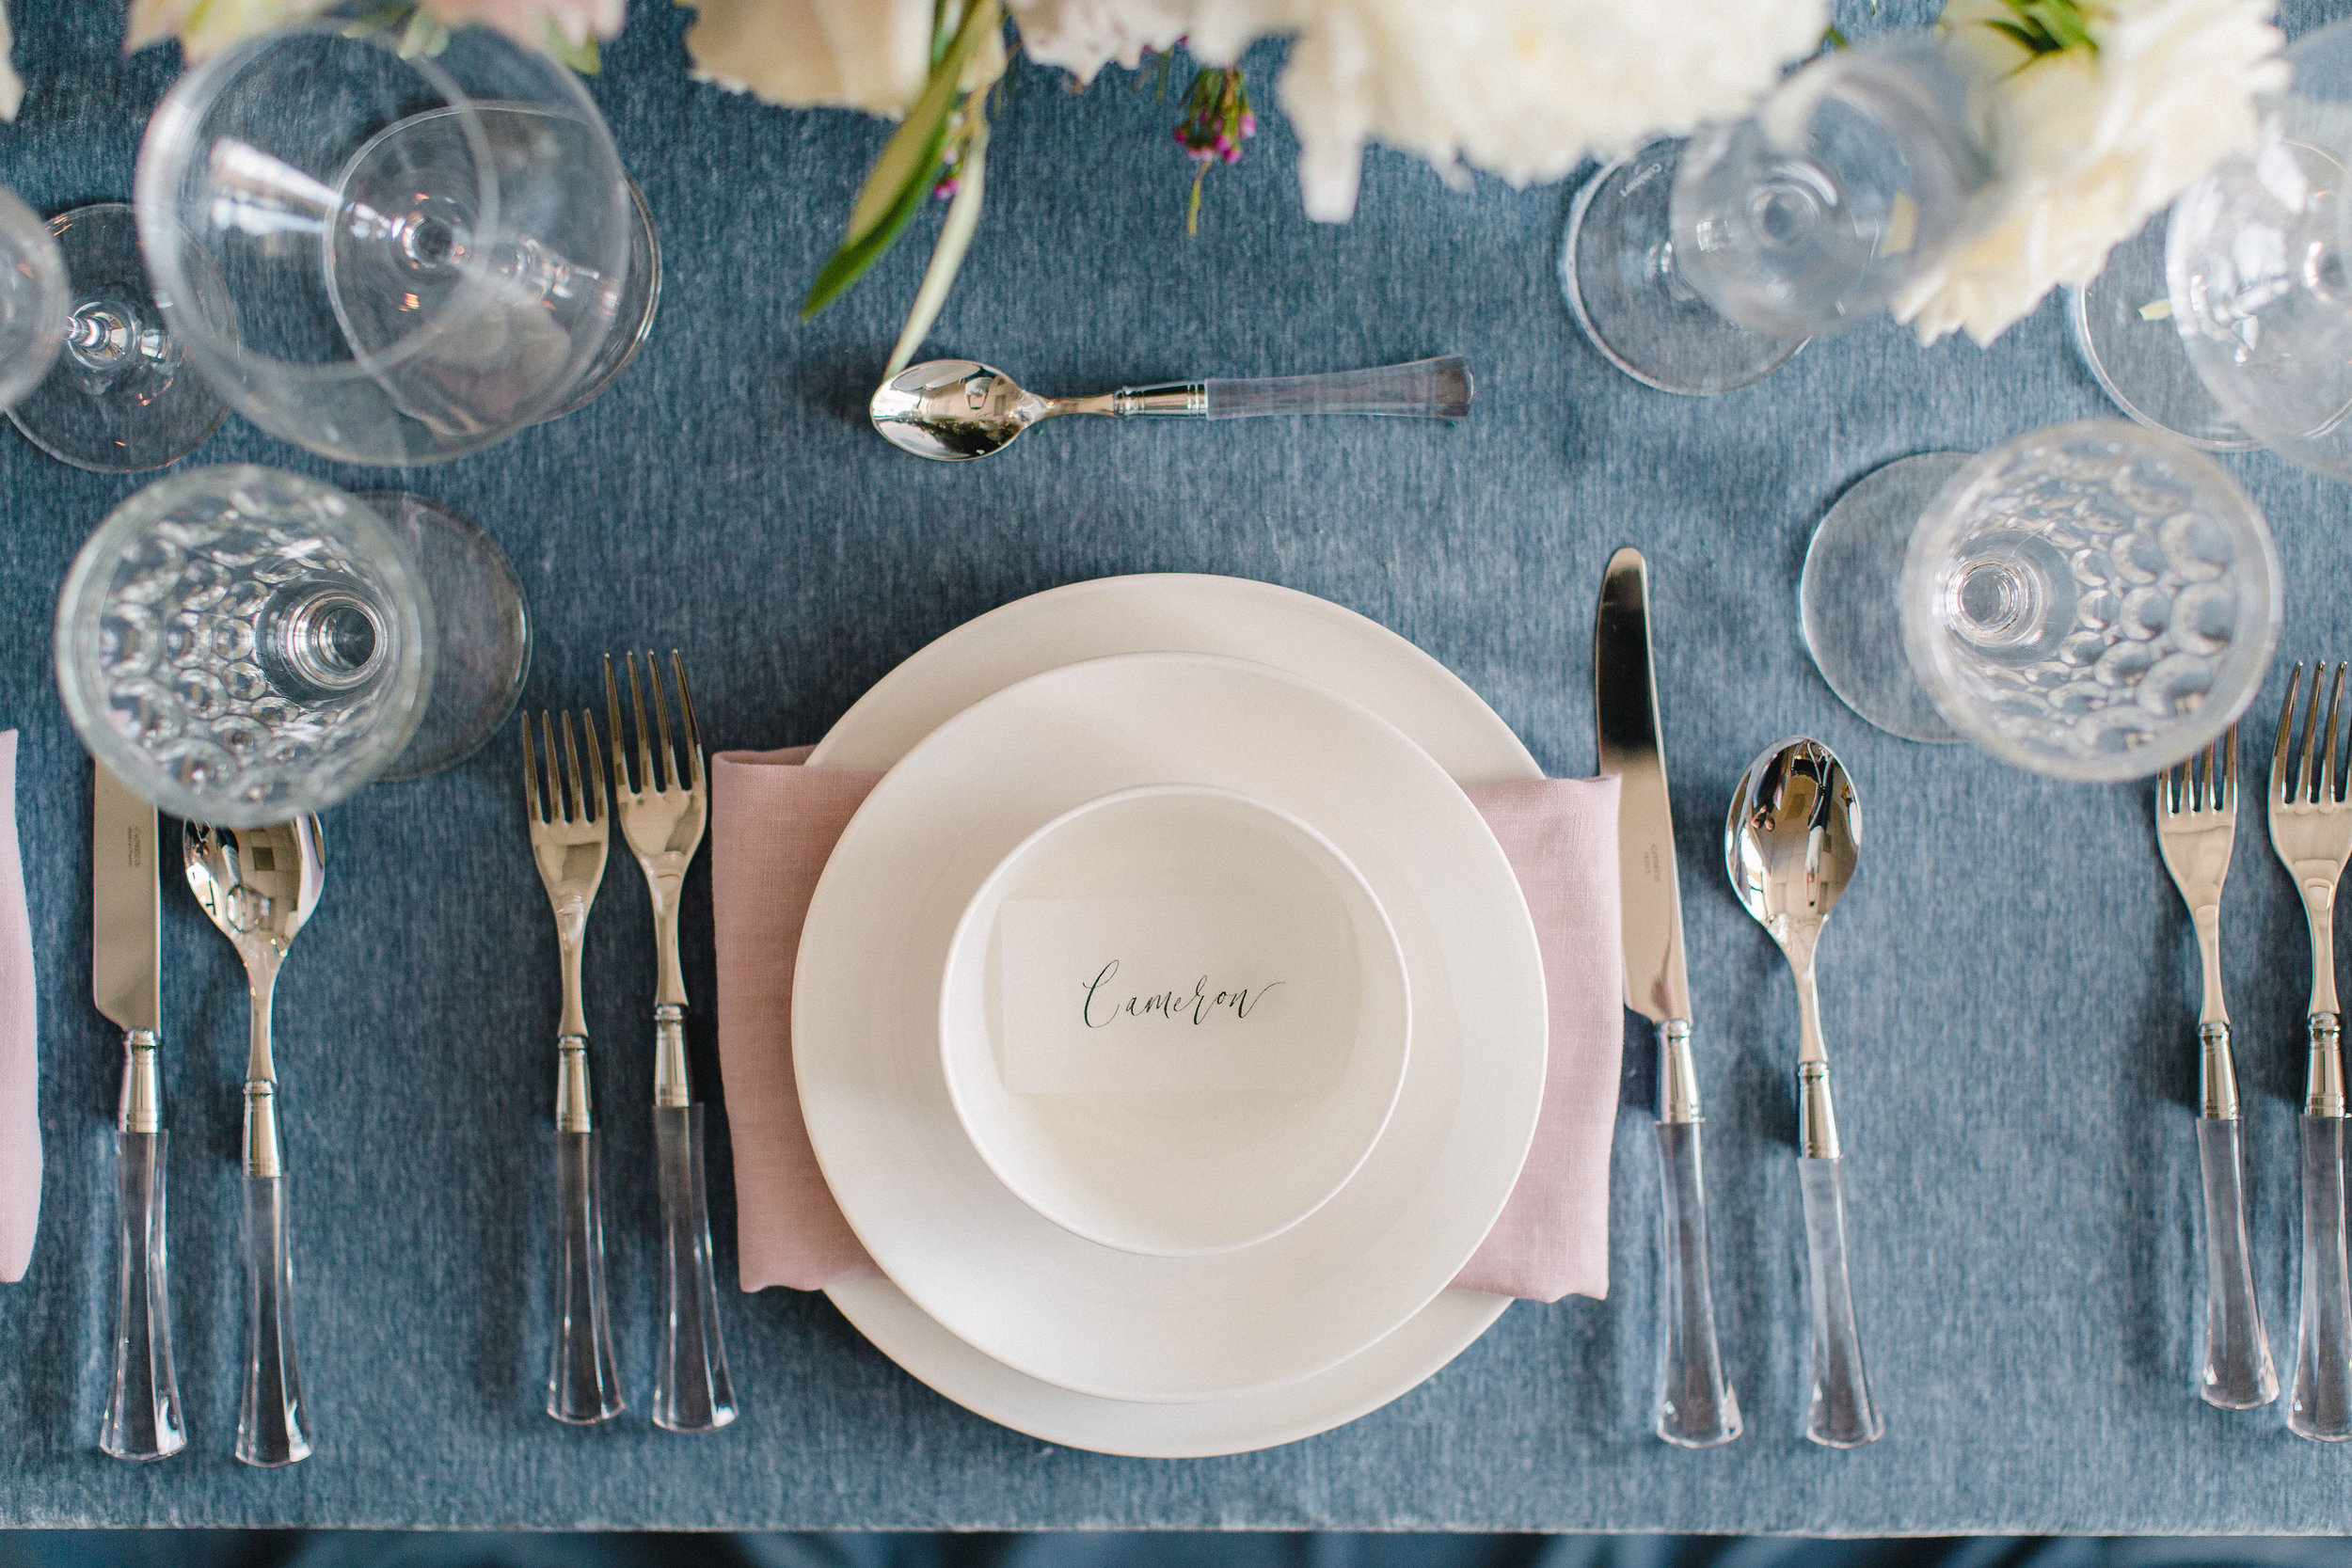 Simple and clean tableware and cutlery. Tablescape inspiration. Floral & Event Design by Maxit Flower Design, Photography:  Alicia Yarrish.  Houston, TX.